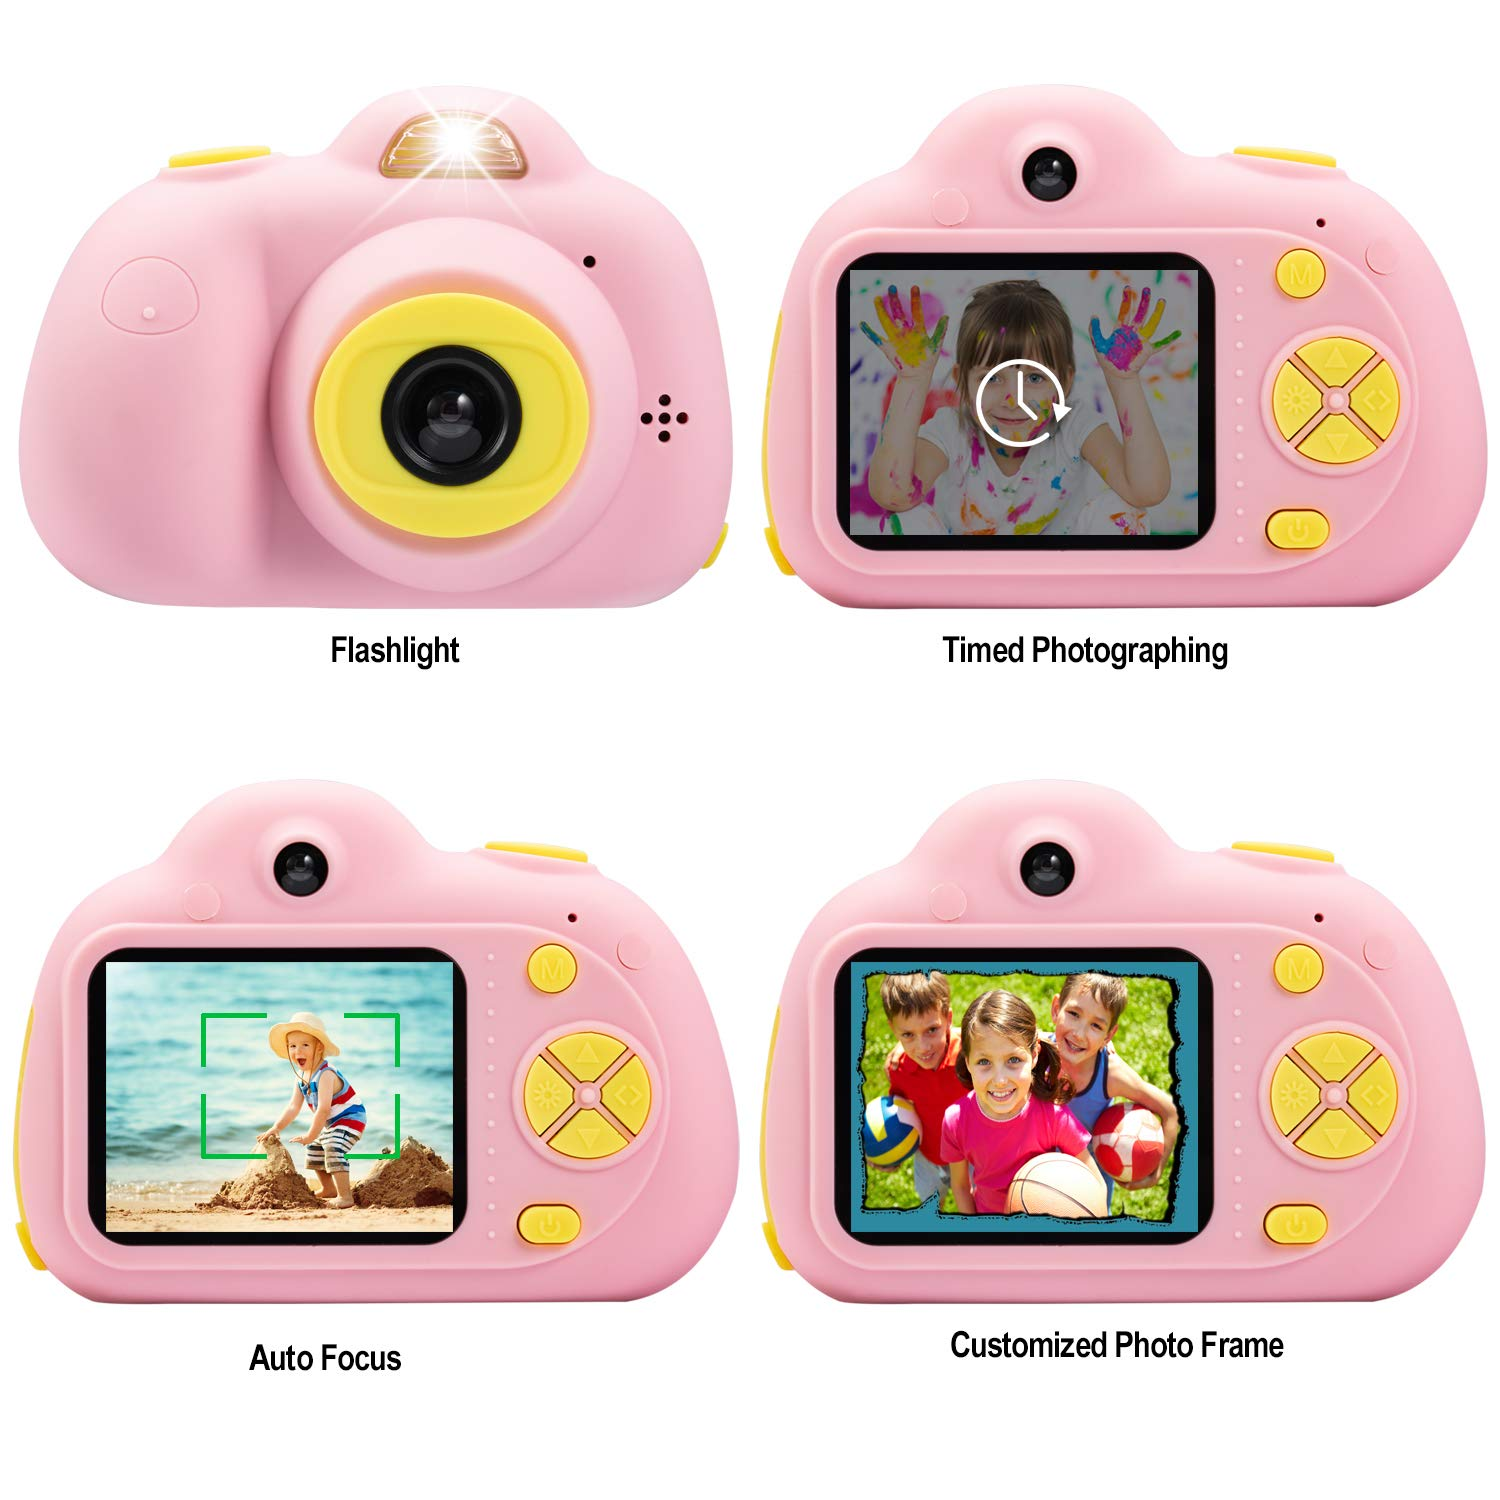 Abdtech Kids Camera Video Cameras Gifts for Girls, Mini Rechargeable Children Shockproof Digital Camcorders Little Girl Toys Gift 8MP with Battery 2 Inch Screen 16GB SD Card ( Pink ) by Abdtech (Image #6)